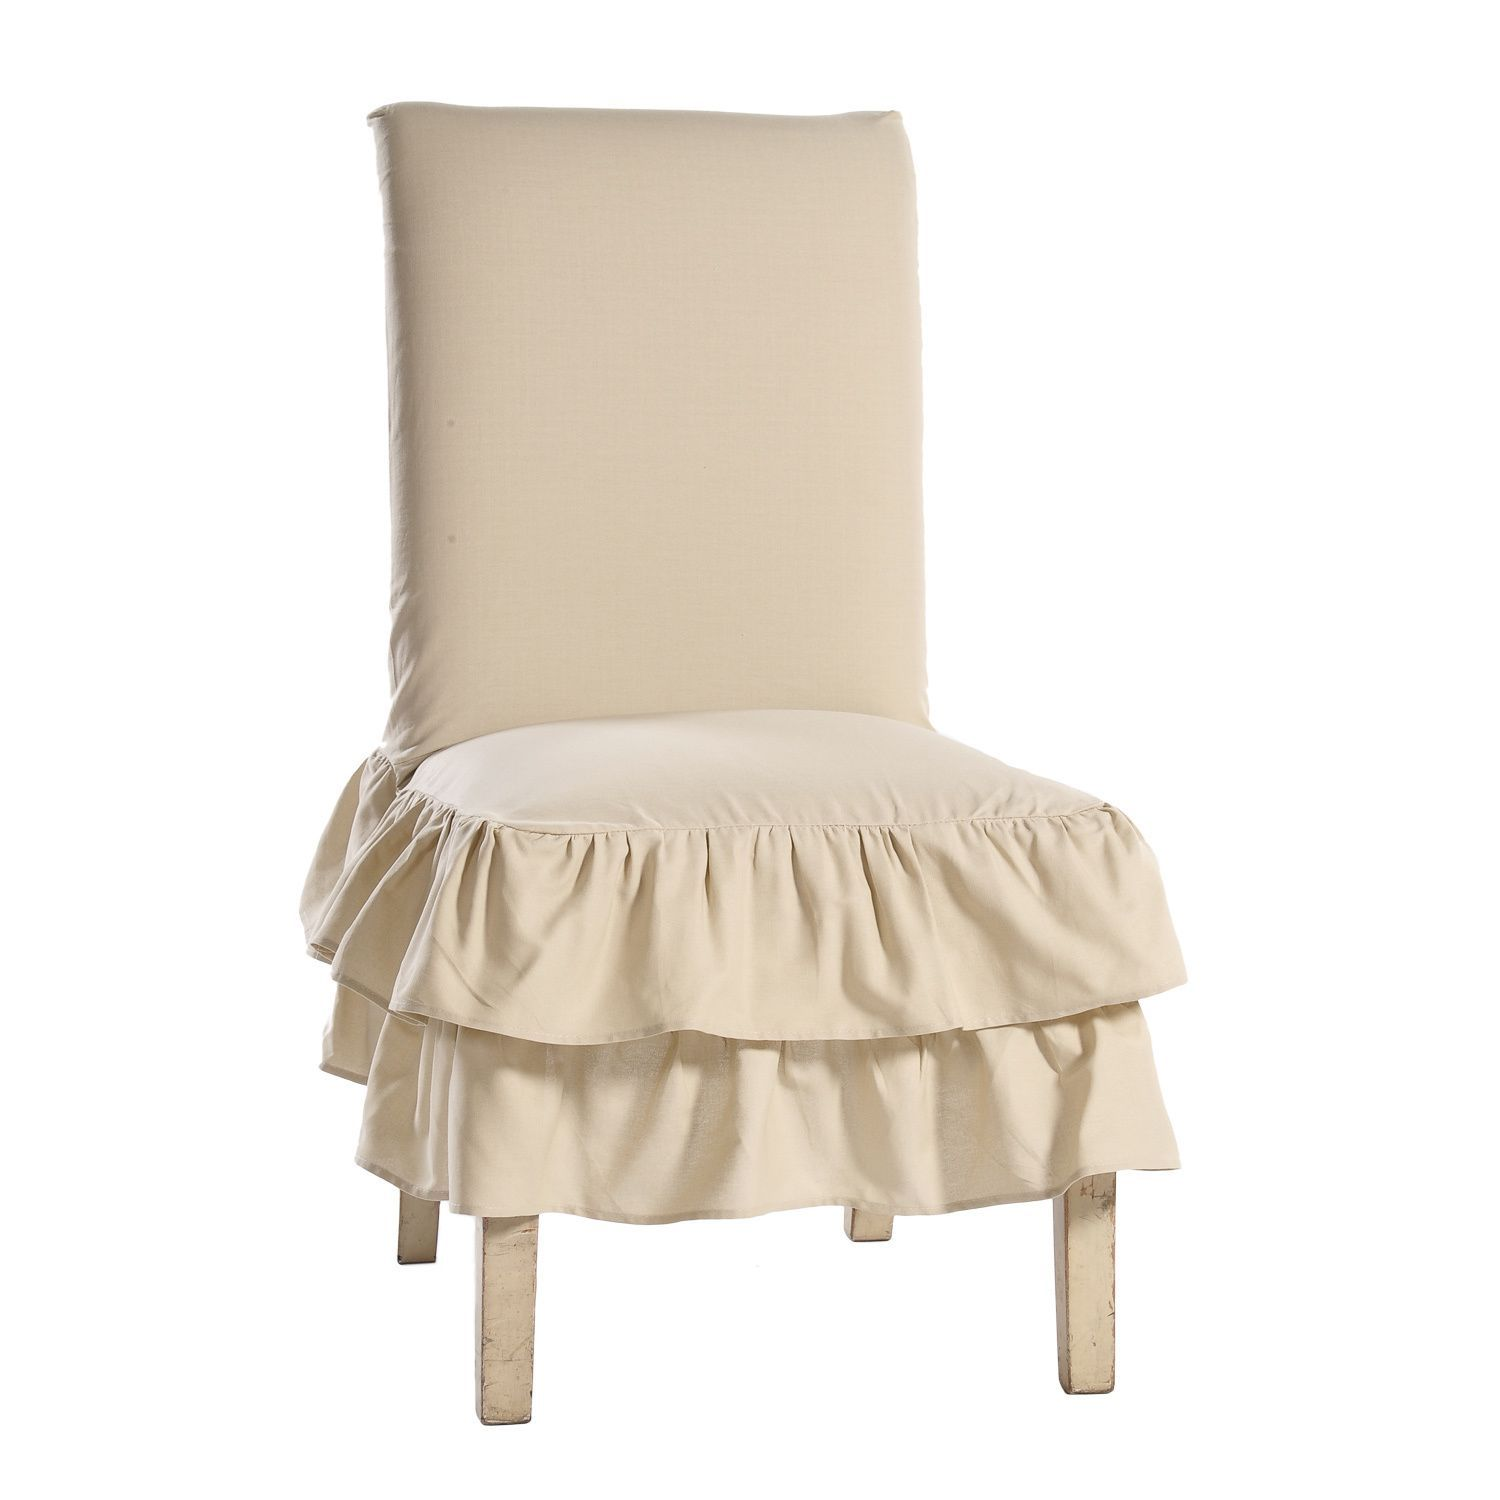 Cotton tiered ruffled dining chair slipcover white